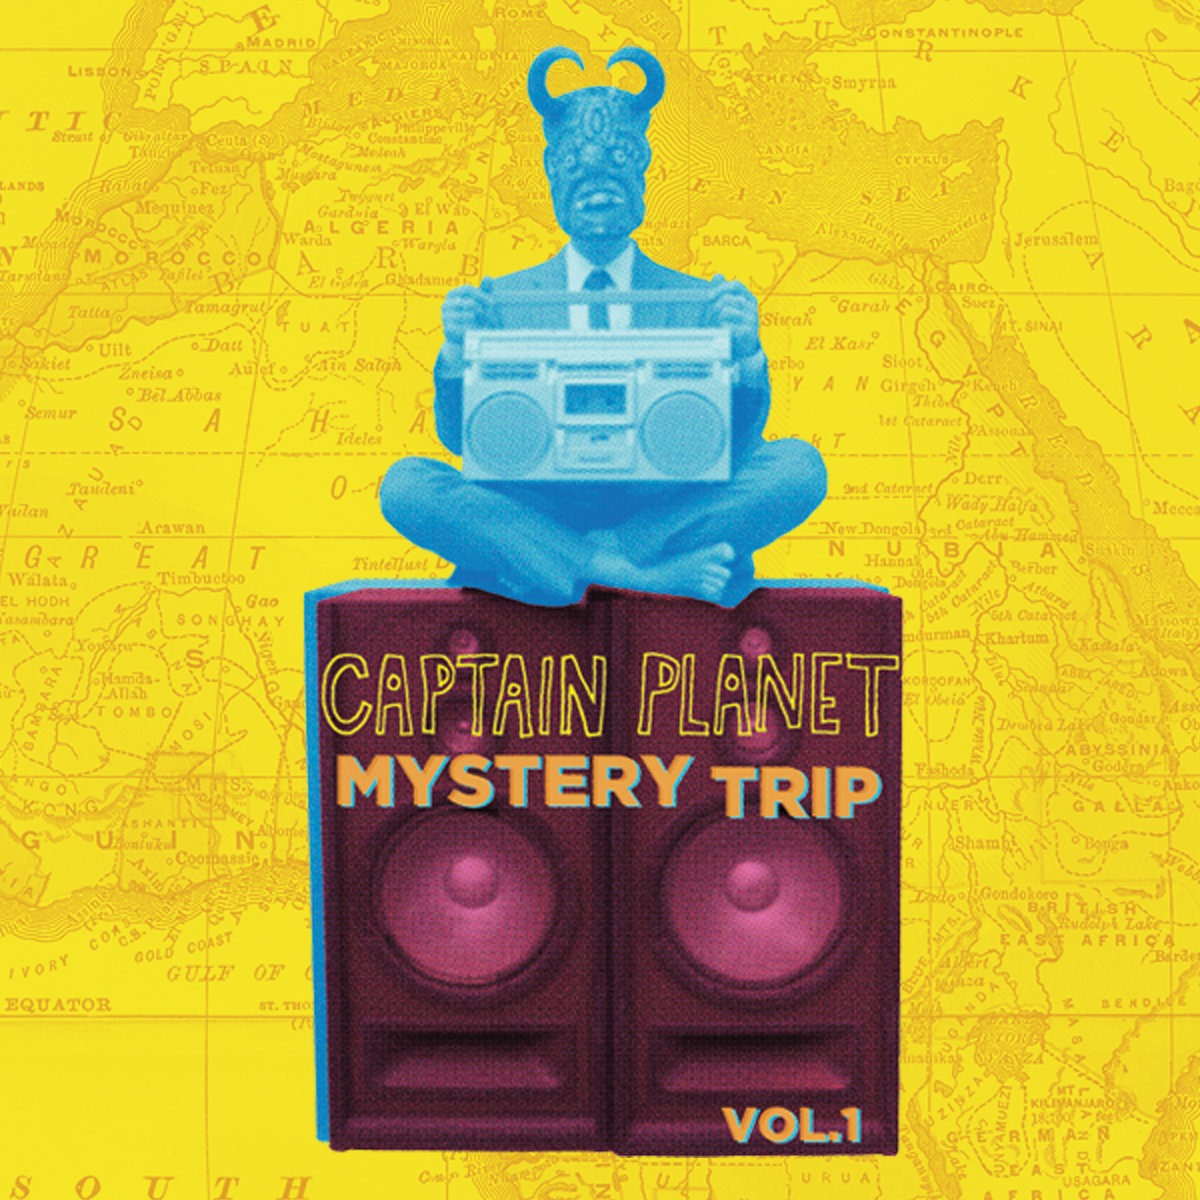 Captain Planet - Mystery Trip Vol. 1 Mixtape